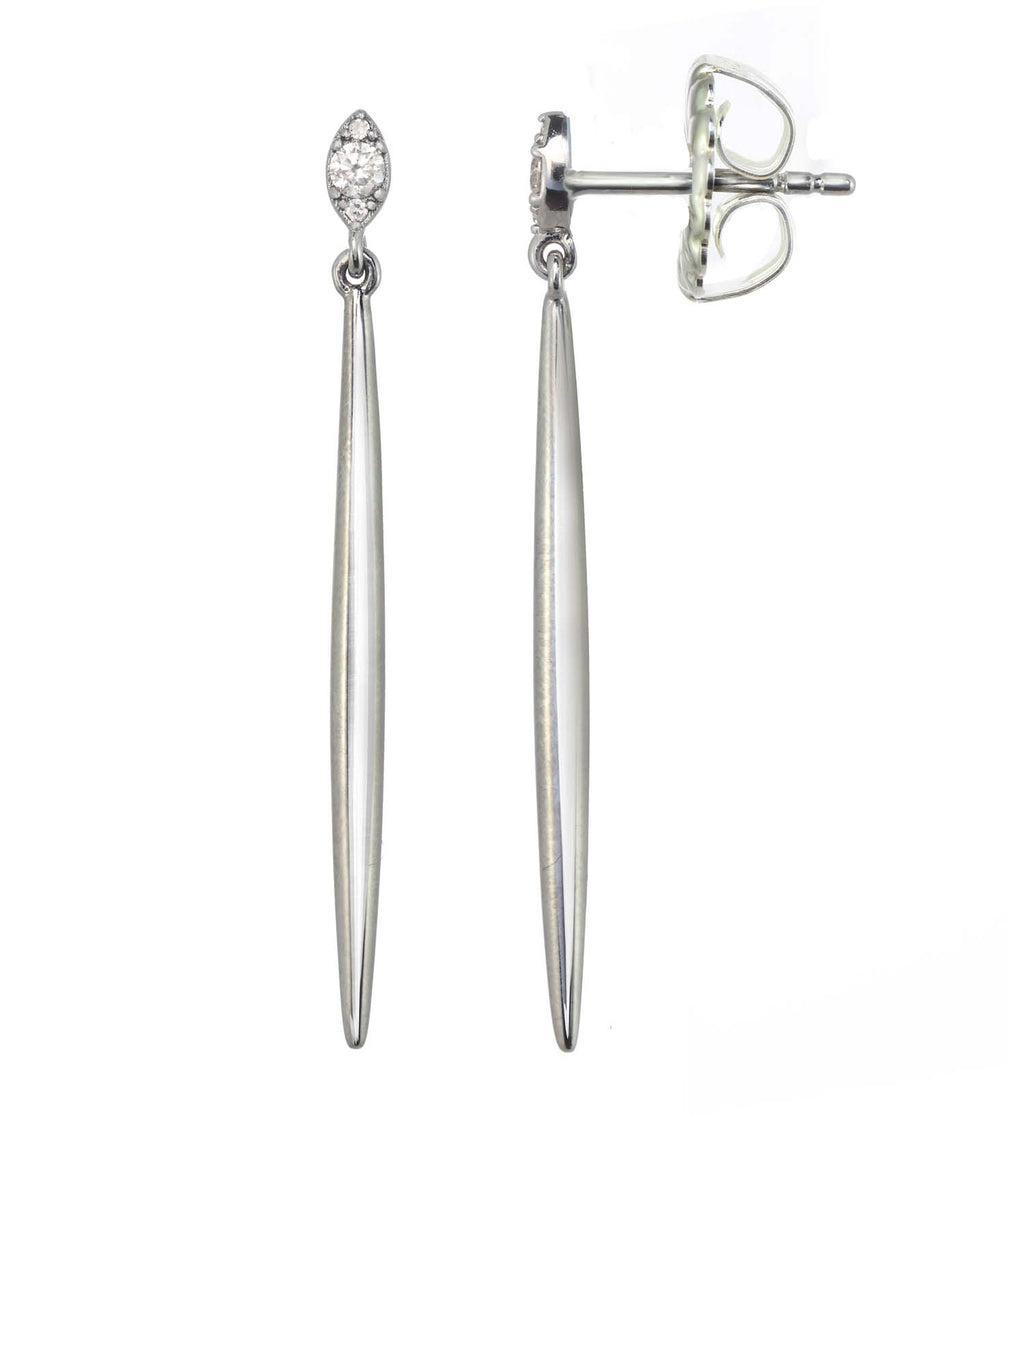 Margo Morrison Silver Spike Earrings